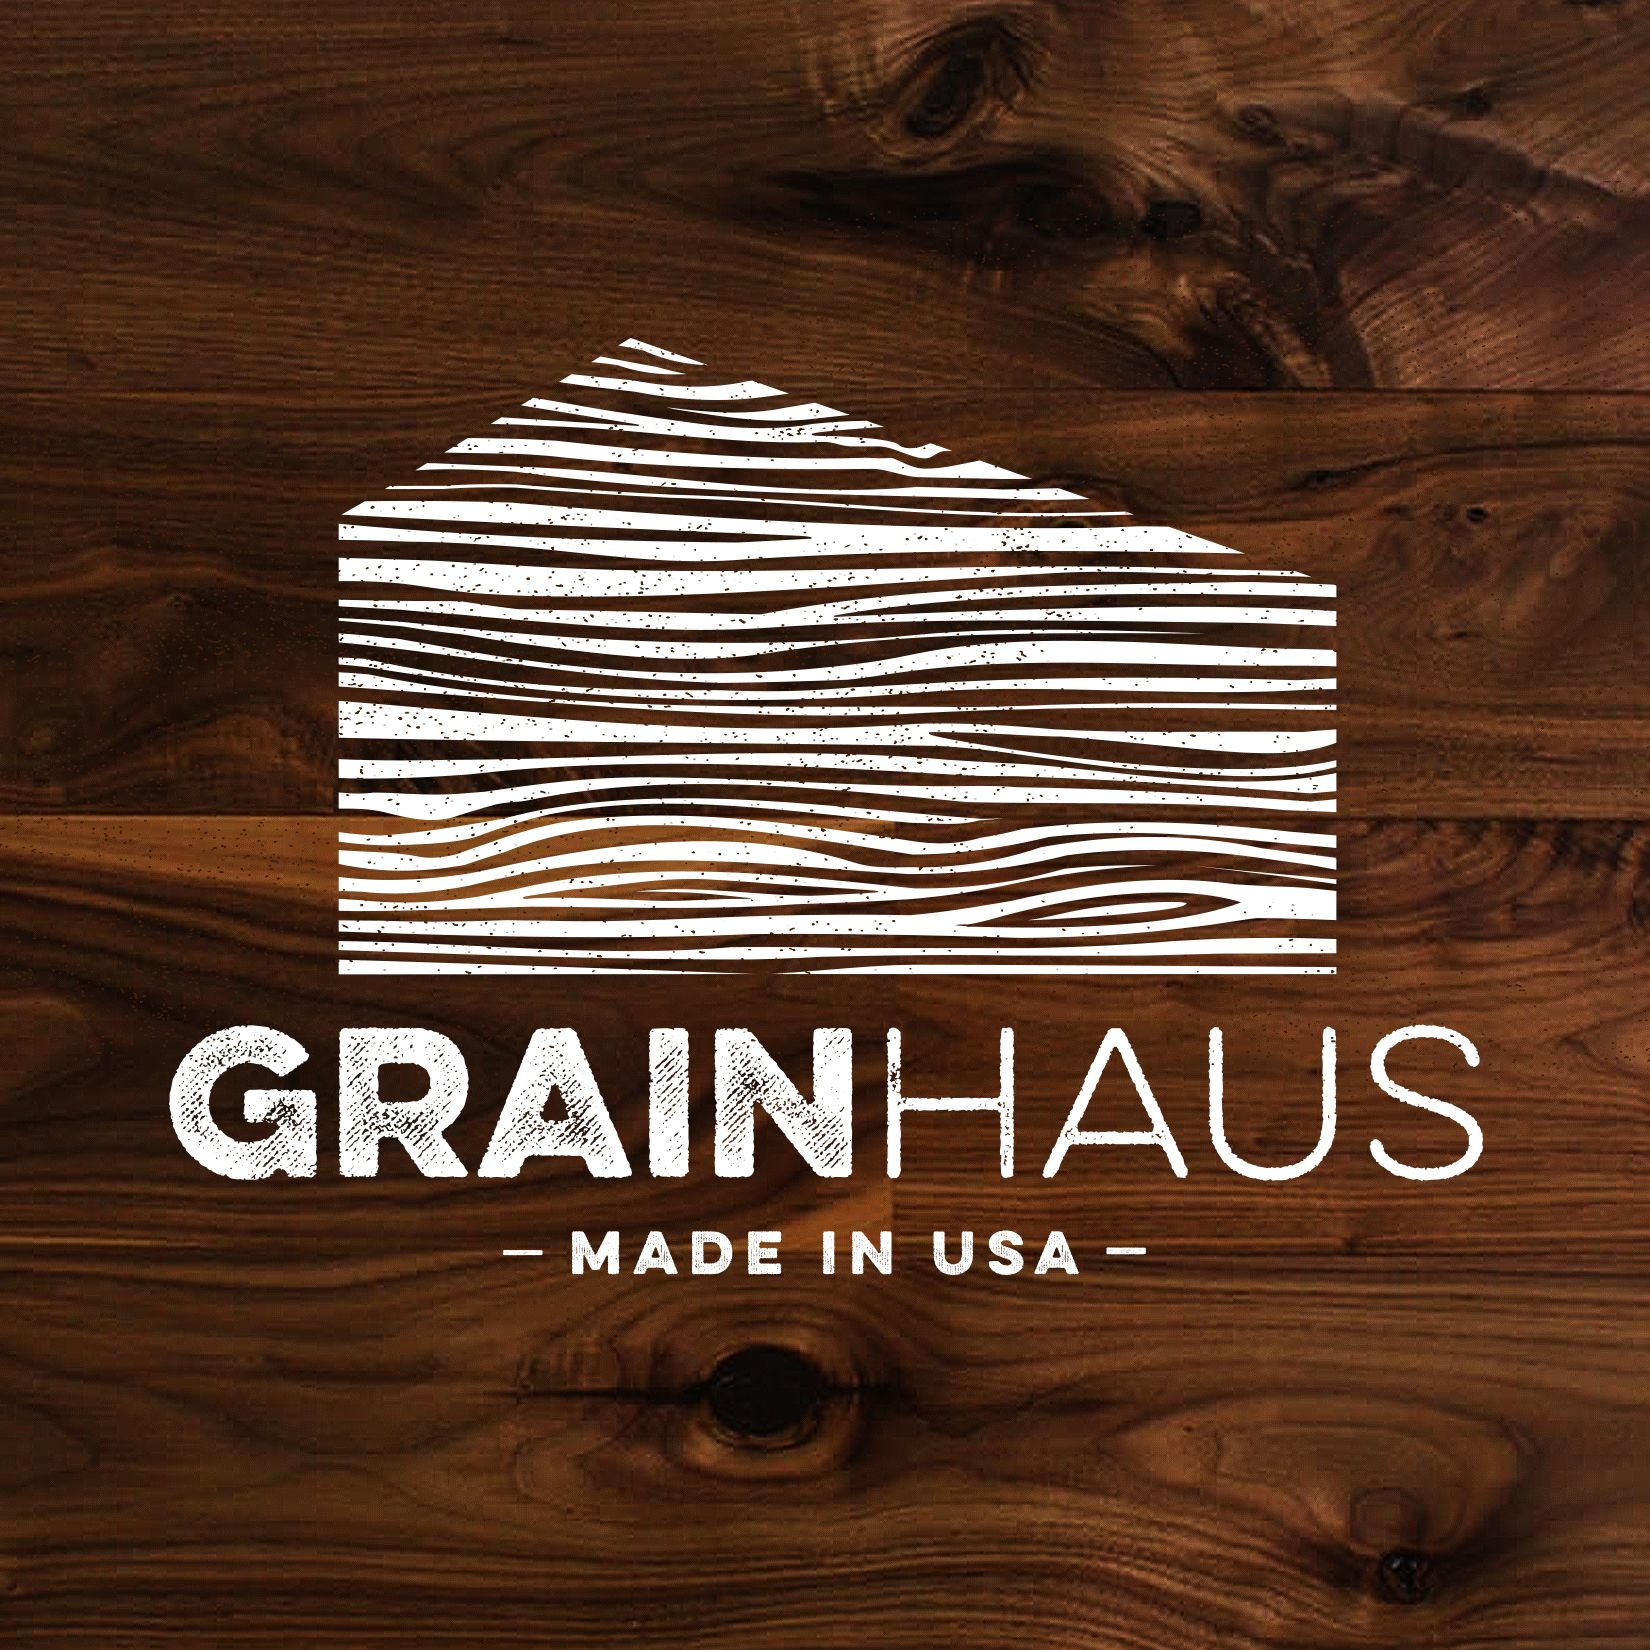 GRAINHAUS is a modern woodworking company utilizing